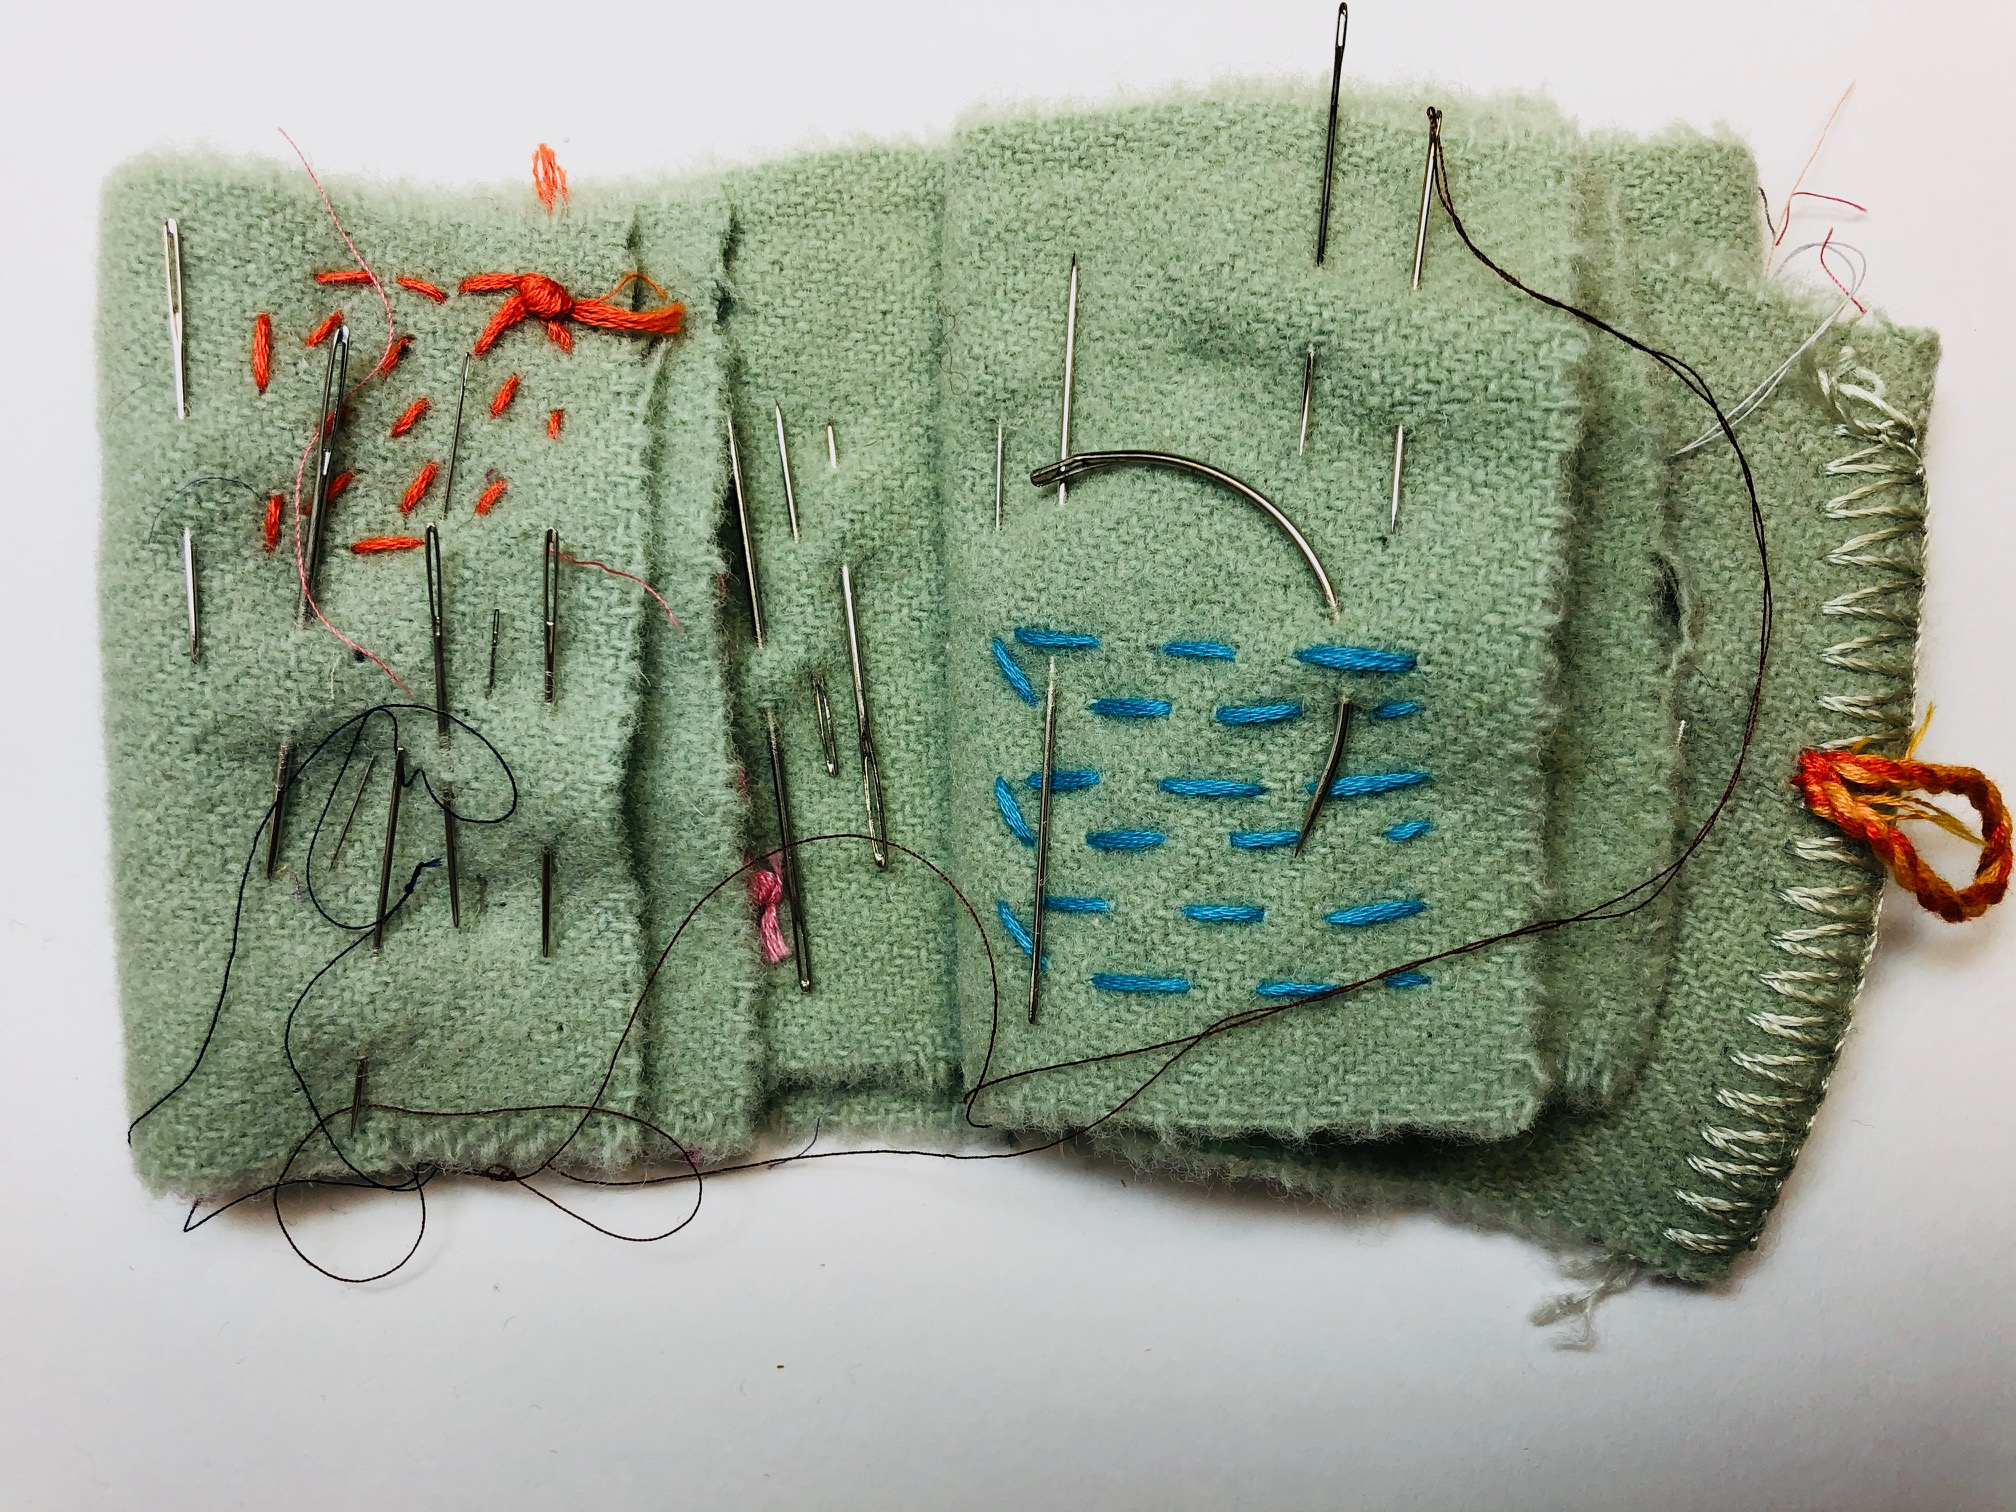 Sewing Needle Book - Judy Dominic